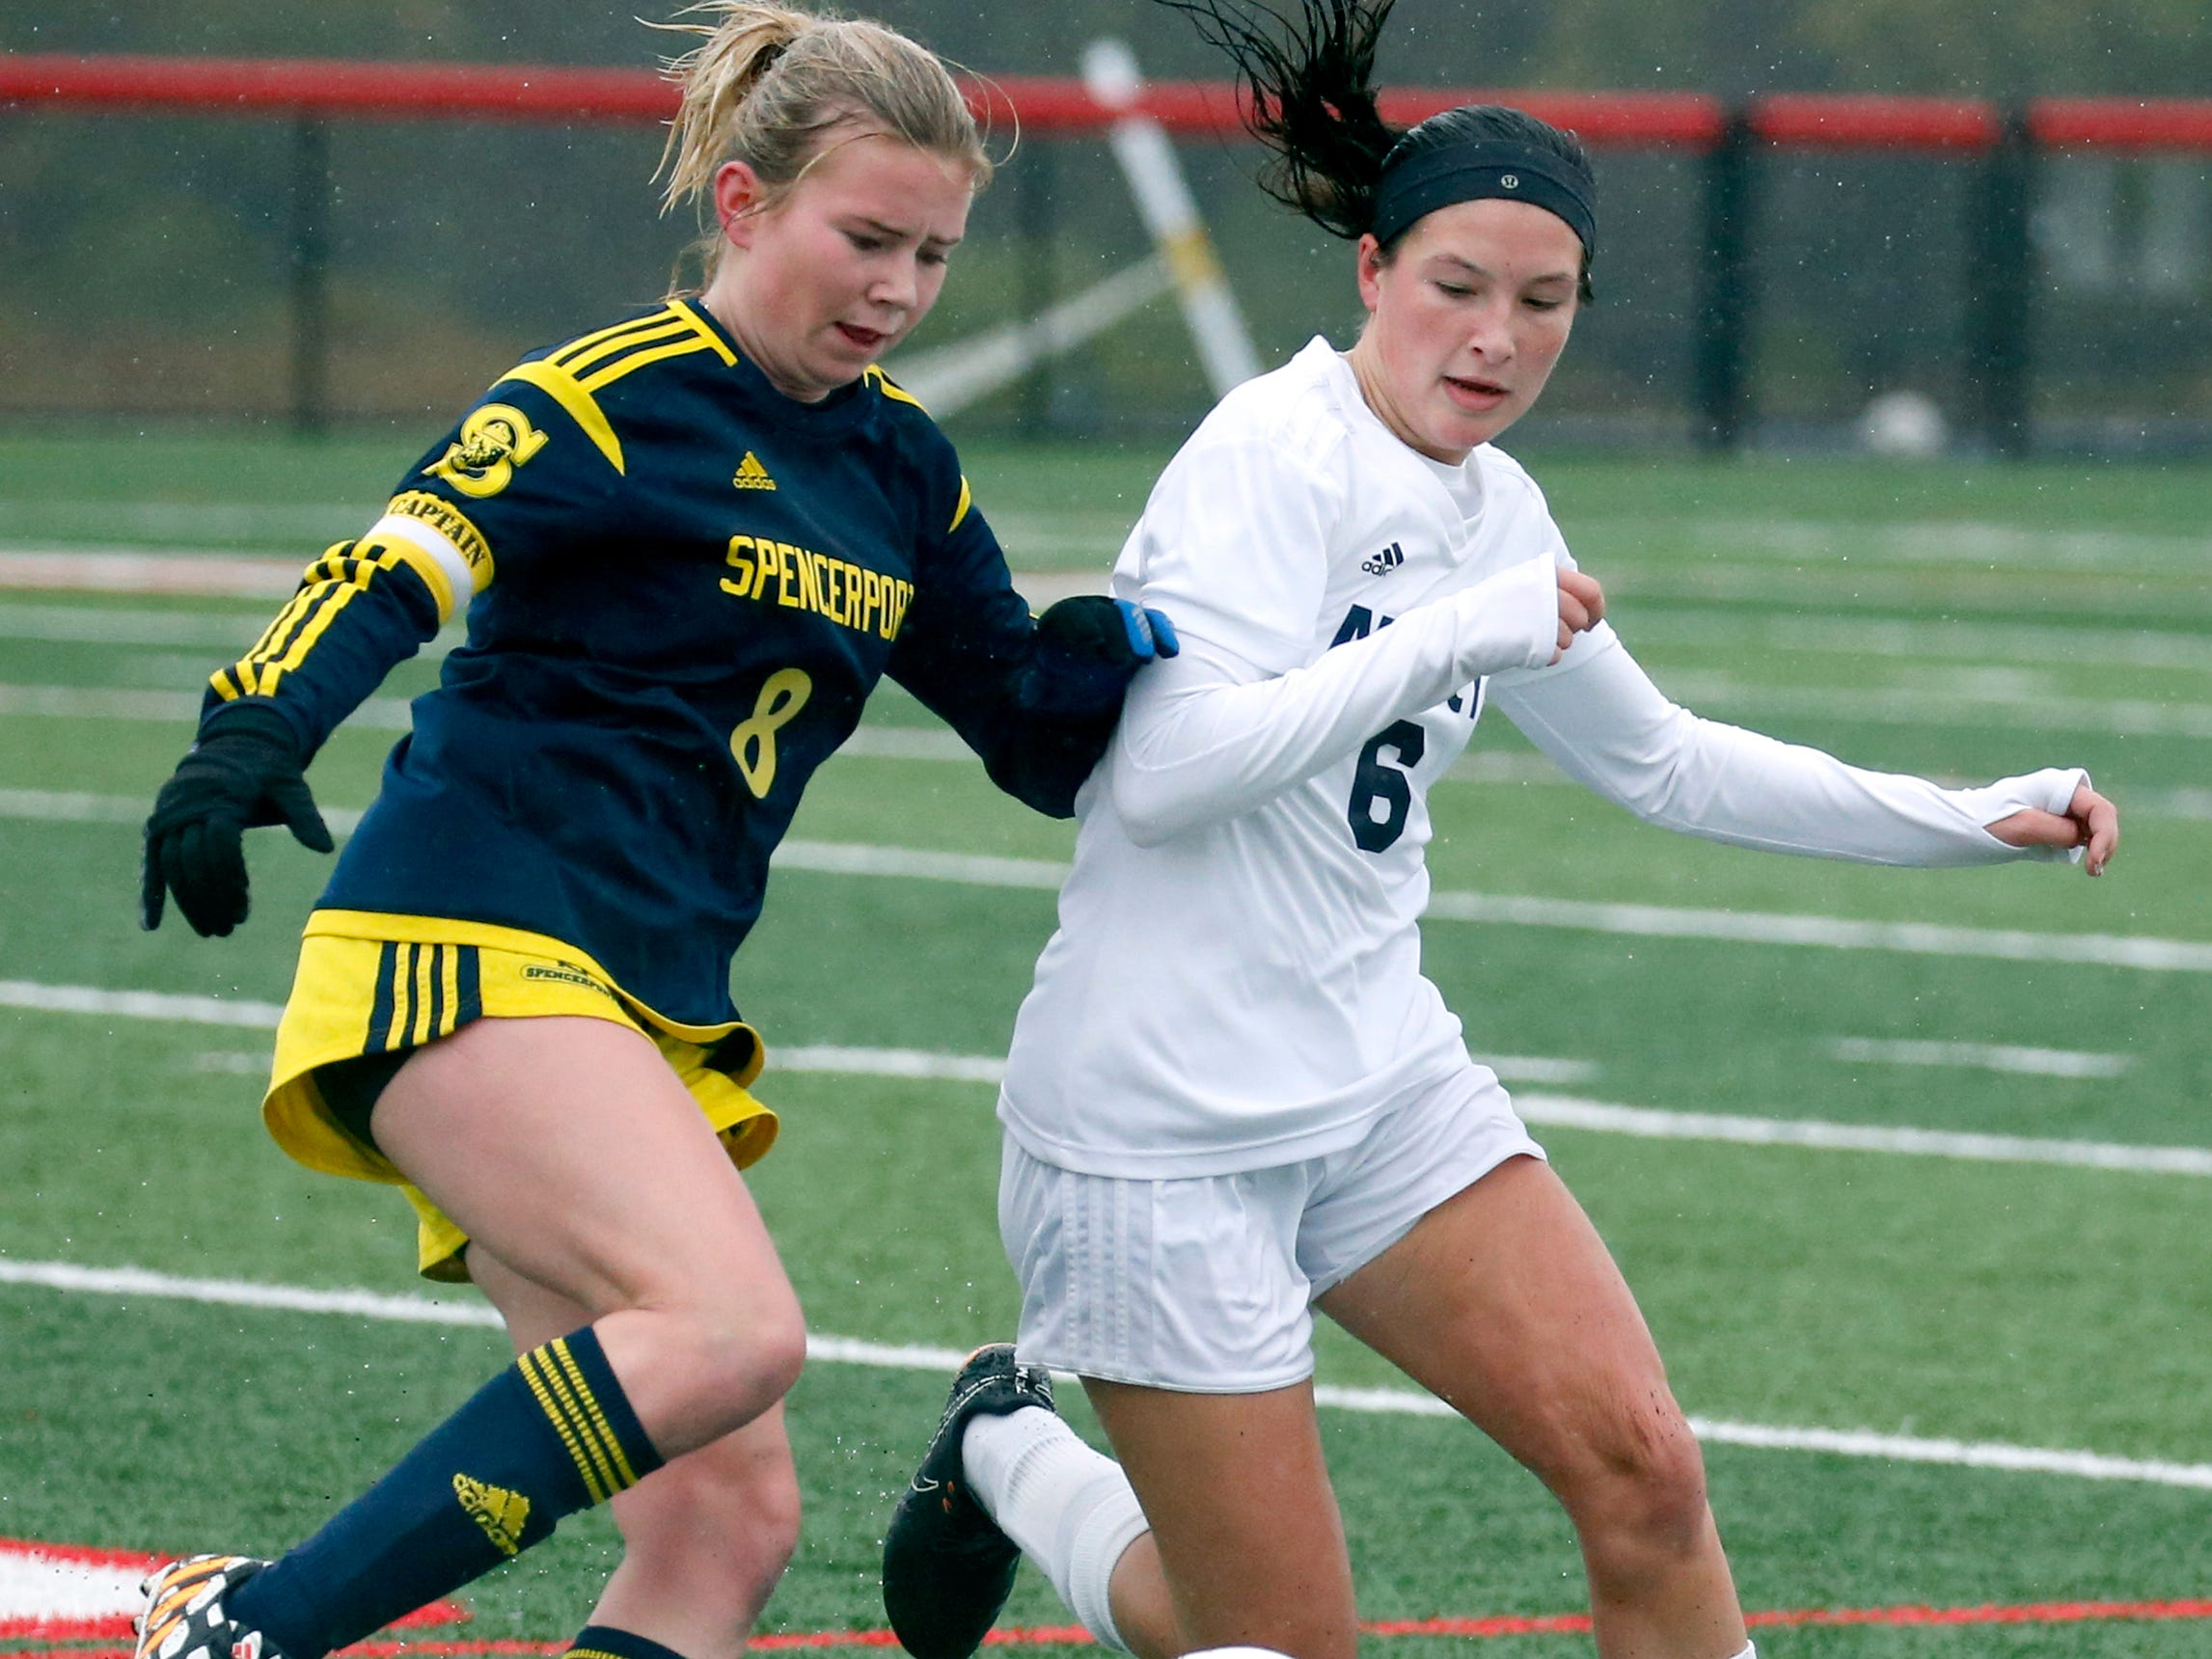 Spencerport's Leah Wengender and Mercy's Kari Schoen pursue the ball in the first half at Canandaigua Academy.